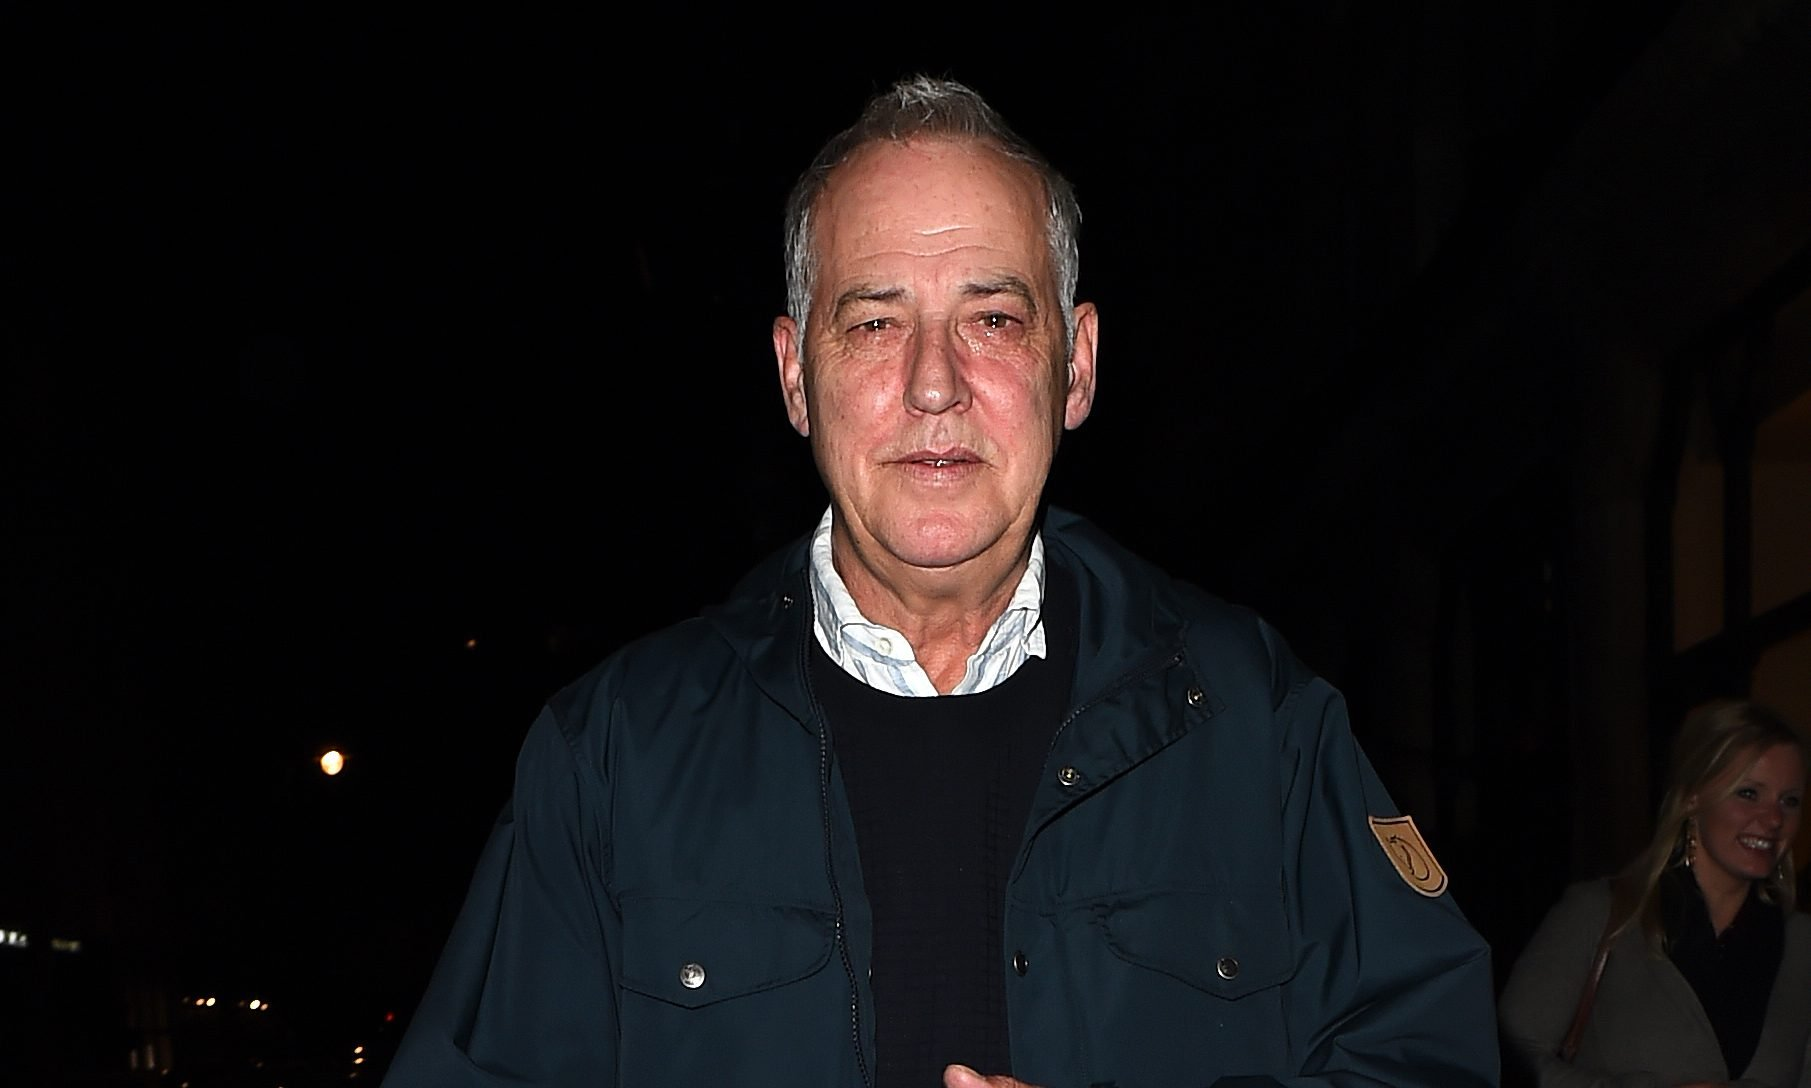 Michael Barrymore to appear on Piers Morgan's life stories